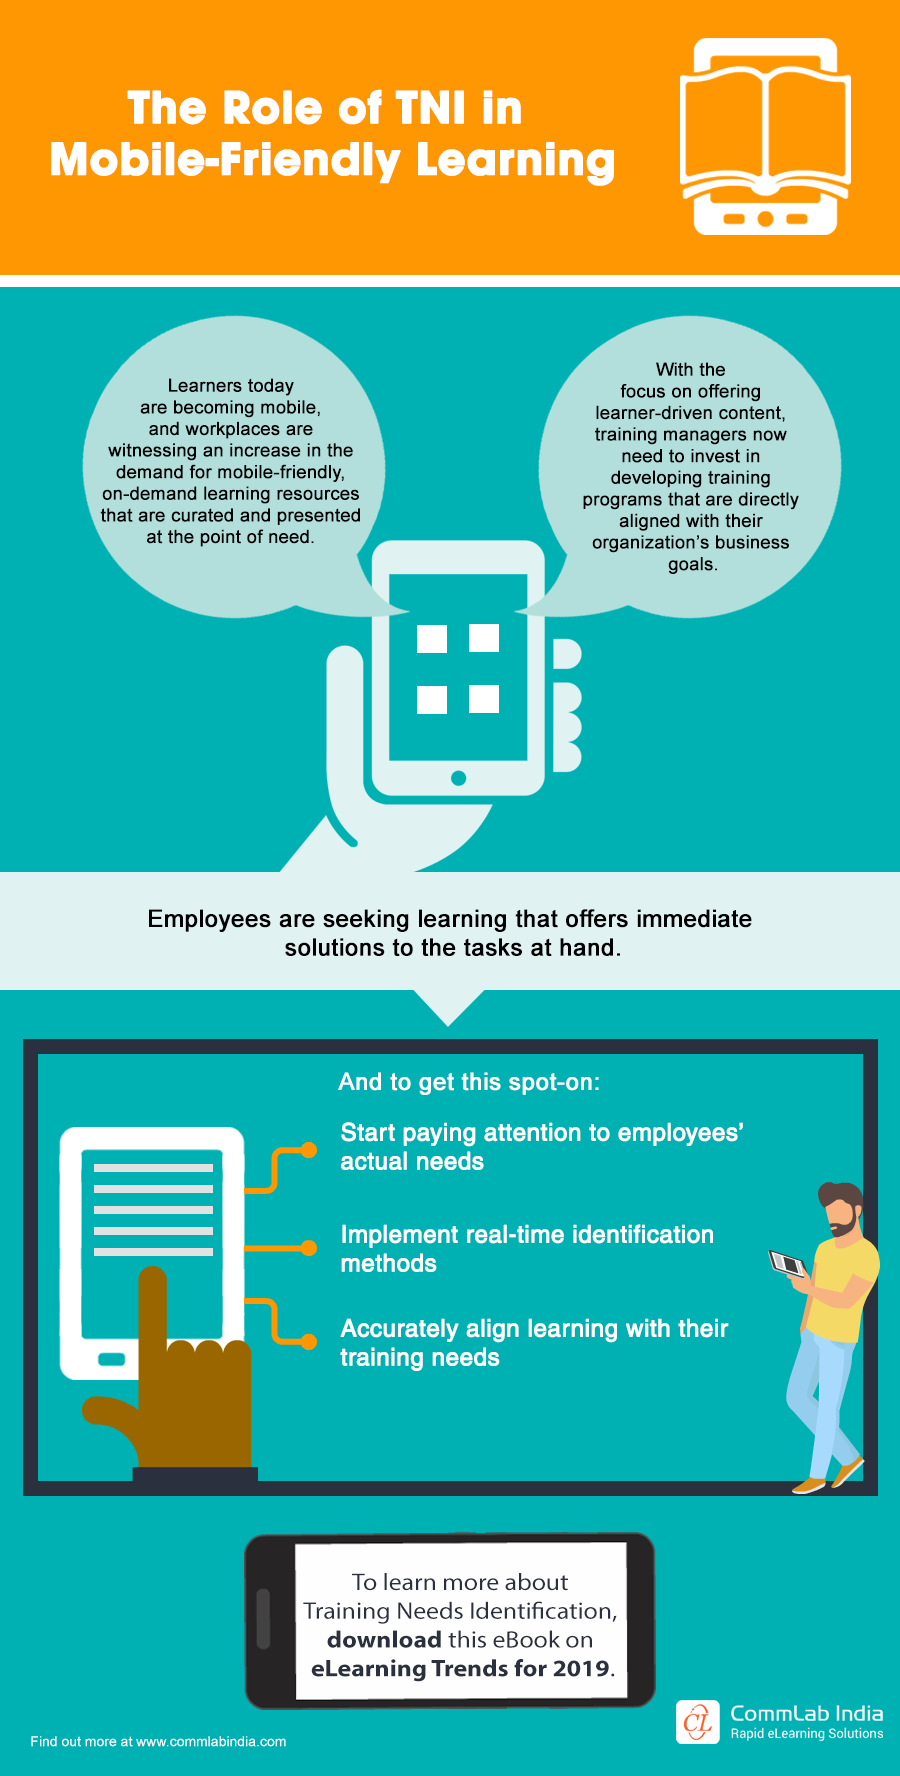 The Role of TNI in Mobile-Friendly Learning [Infographic]